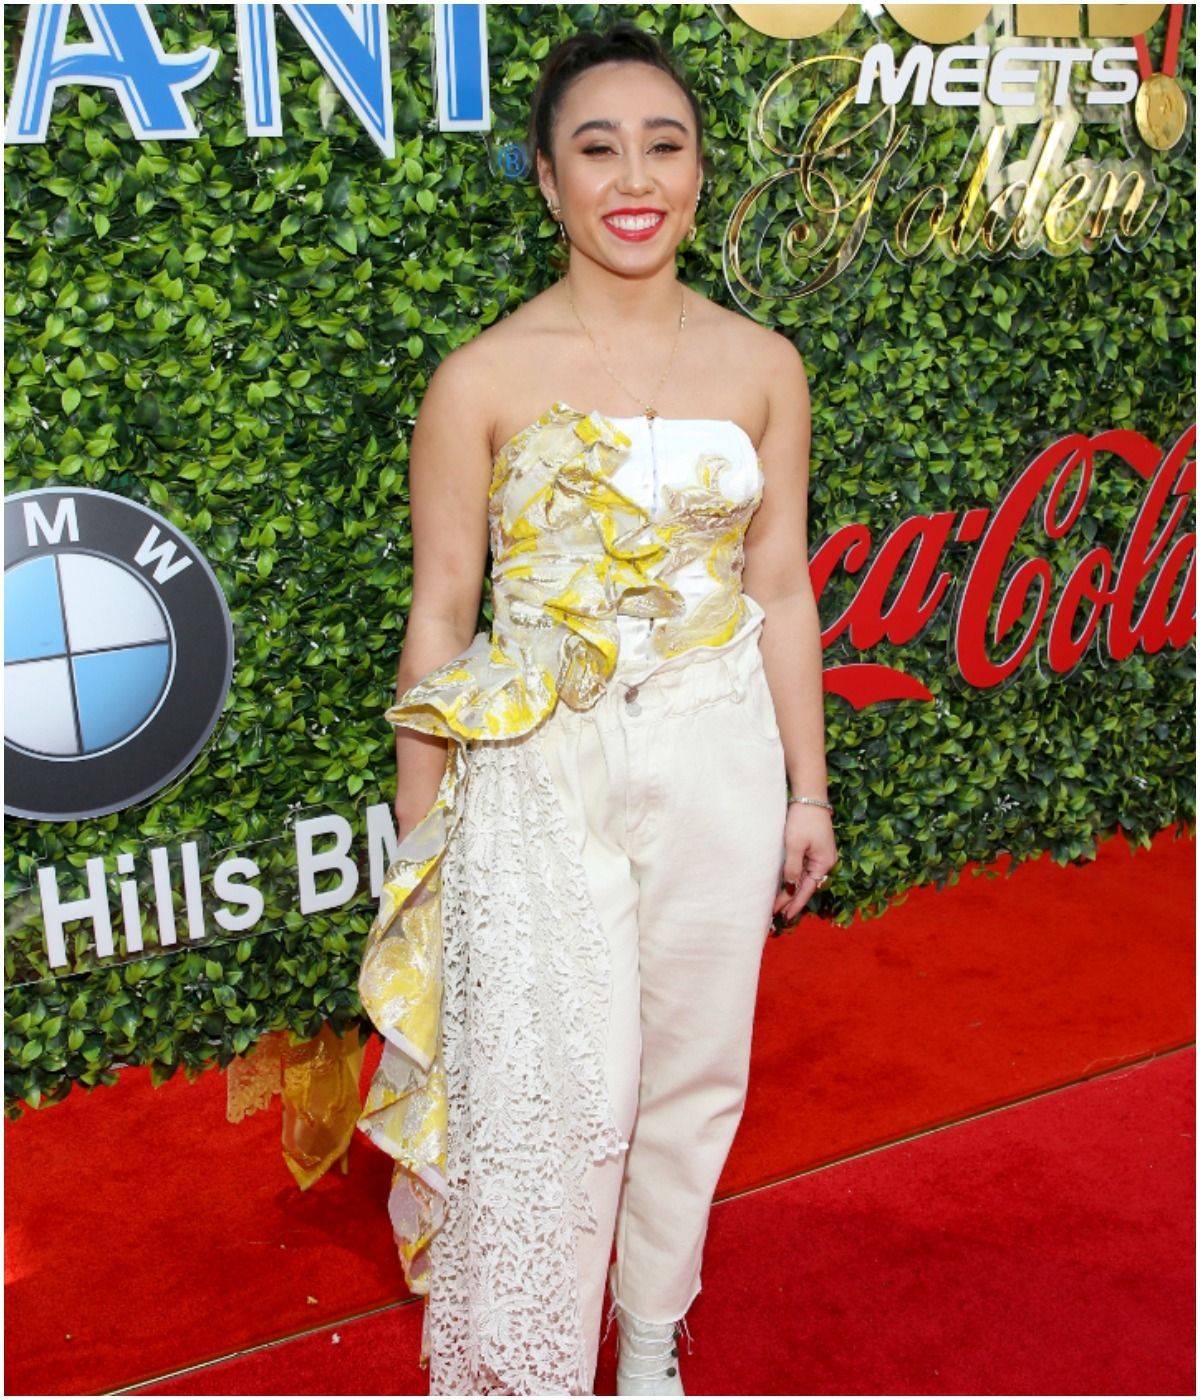 what is the net worth of Katelyn Ohashi